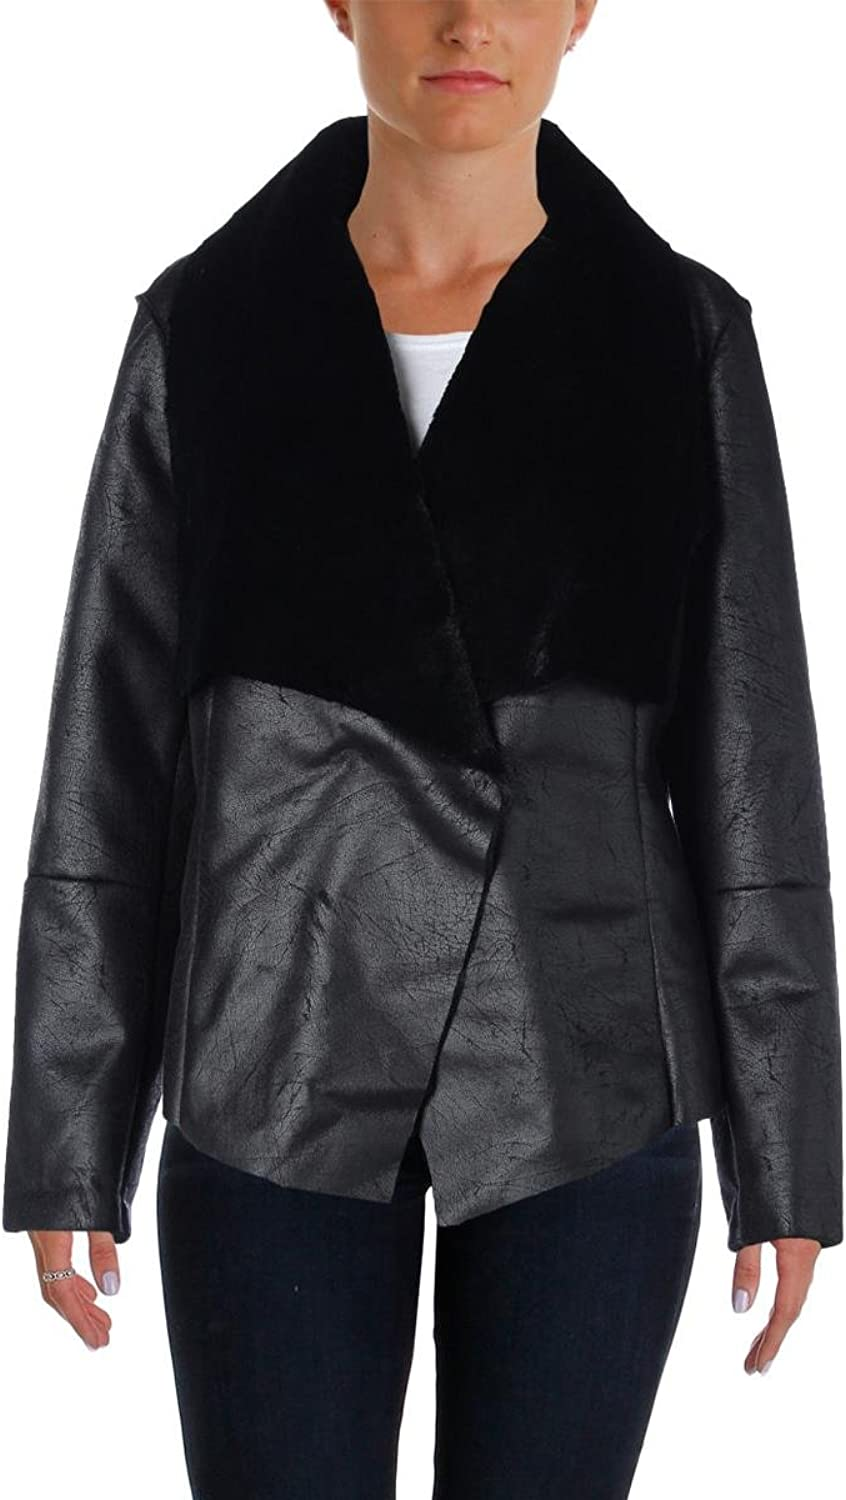 Alfani FauxShearling Jacket Medium Black